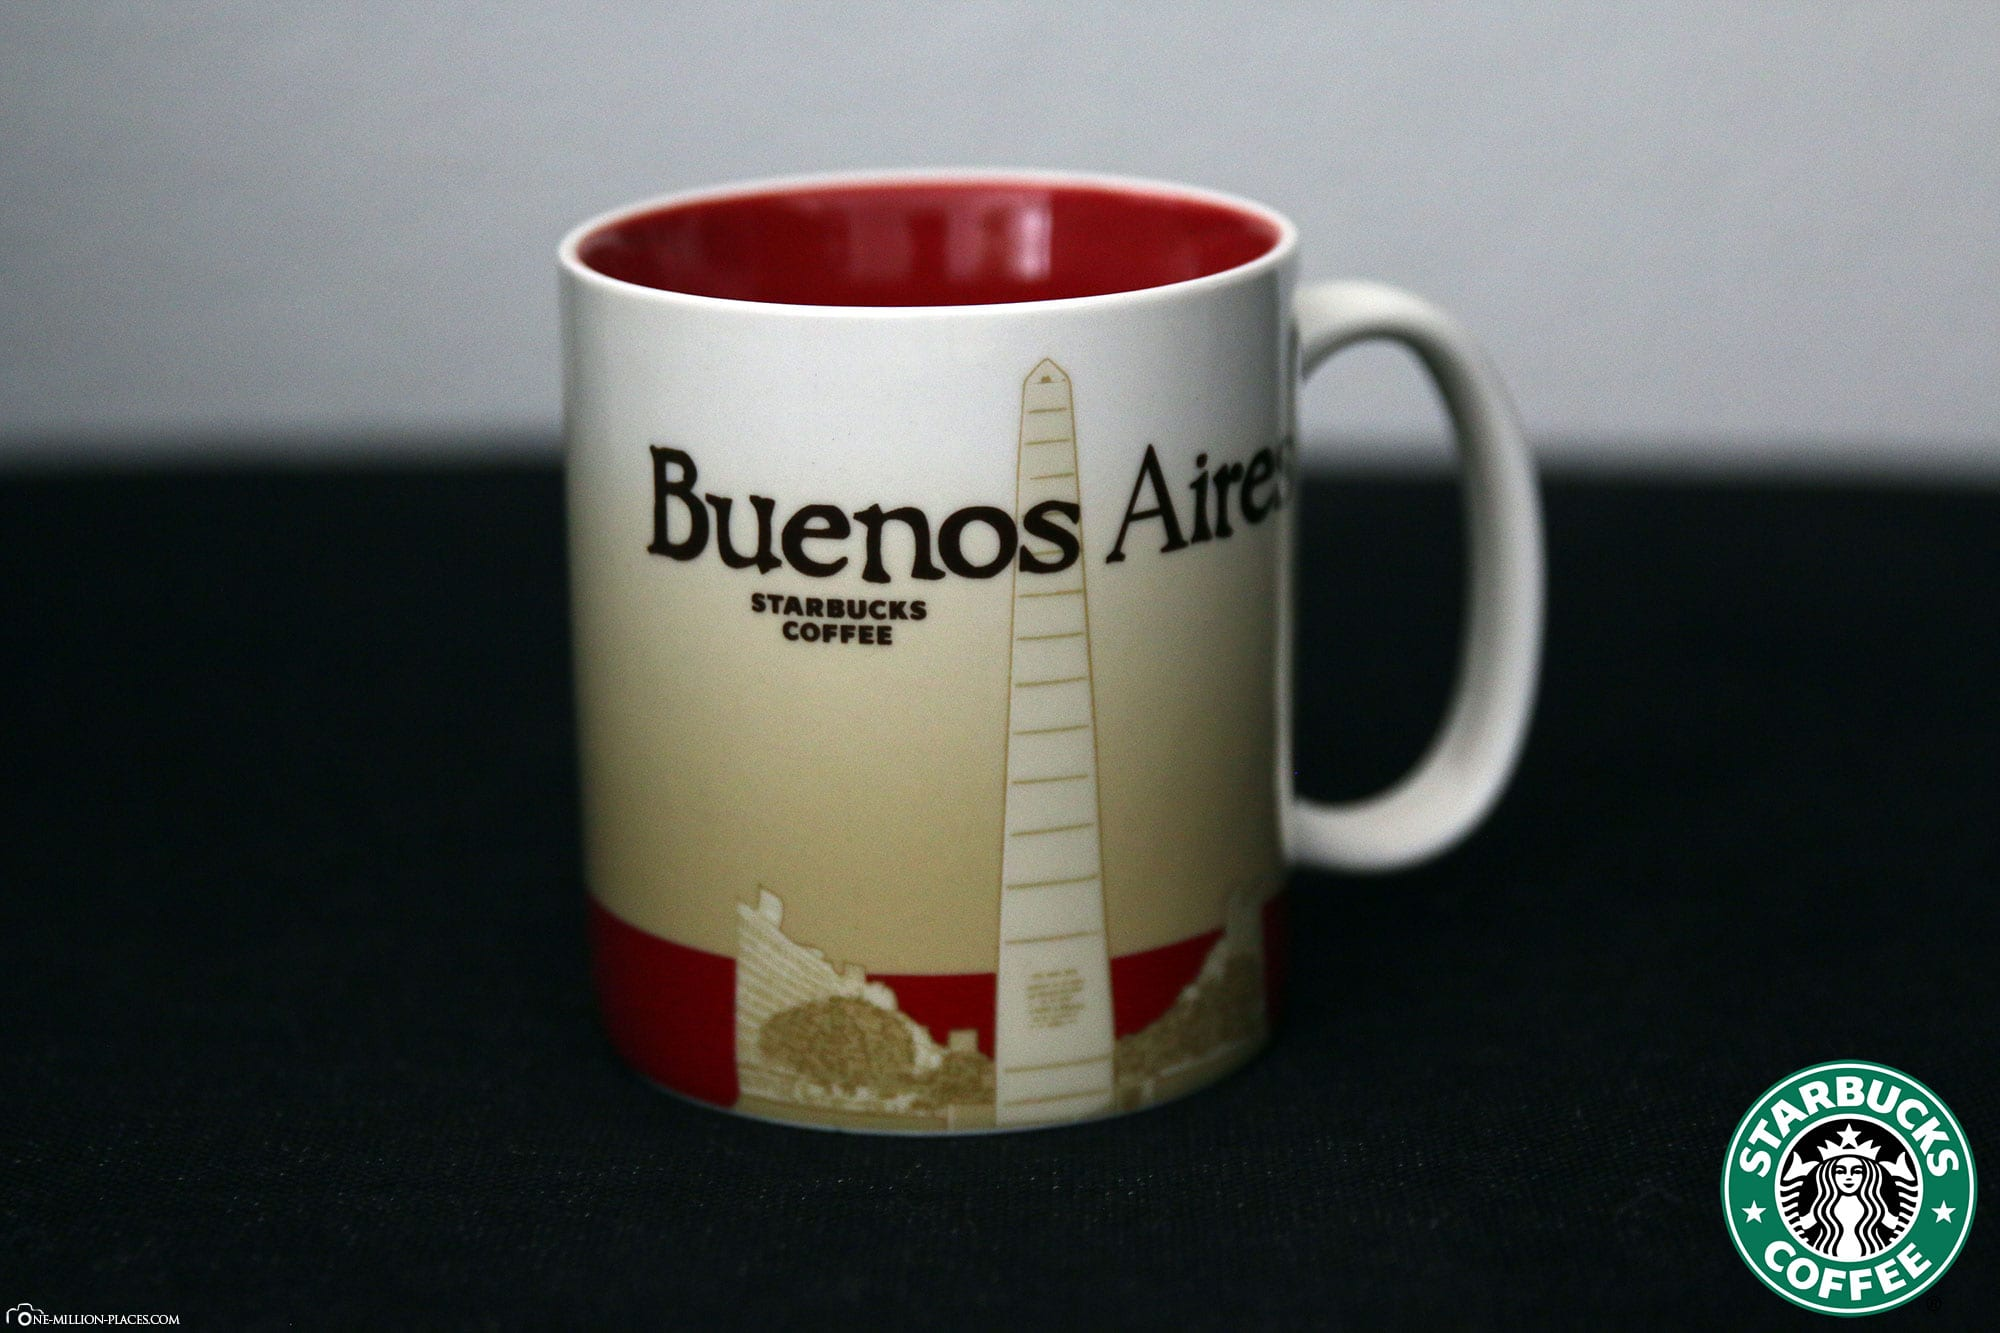 Buenos Aires, Starbucks Cup, Global Icon Series, City Mugs, Collection, Argentina, Travelreport